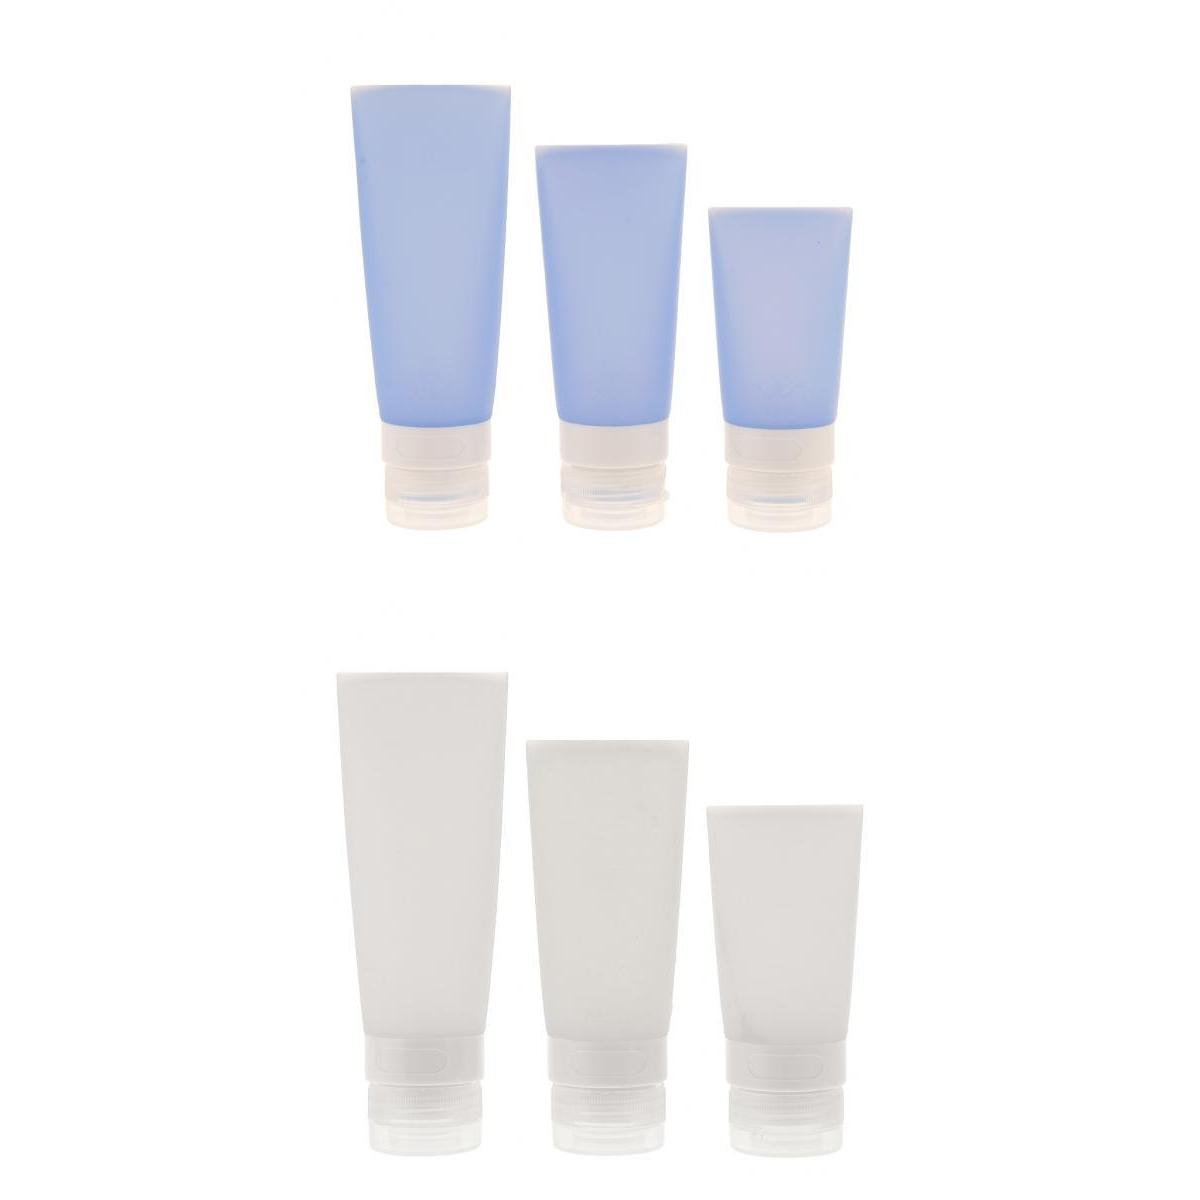 MagiDeal 6PCS 38/60/80ML Empty Refillable Frosted Silicone Travel Cosmetic Makeup Soft Tubes Container Bottle with Flip Cap Shower Lotion Cleanser Packing Sample Bottles